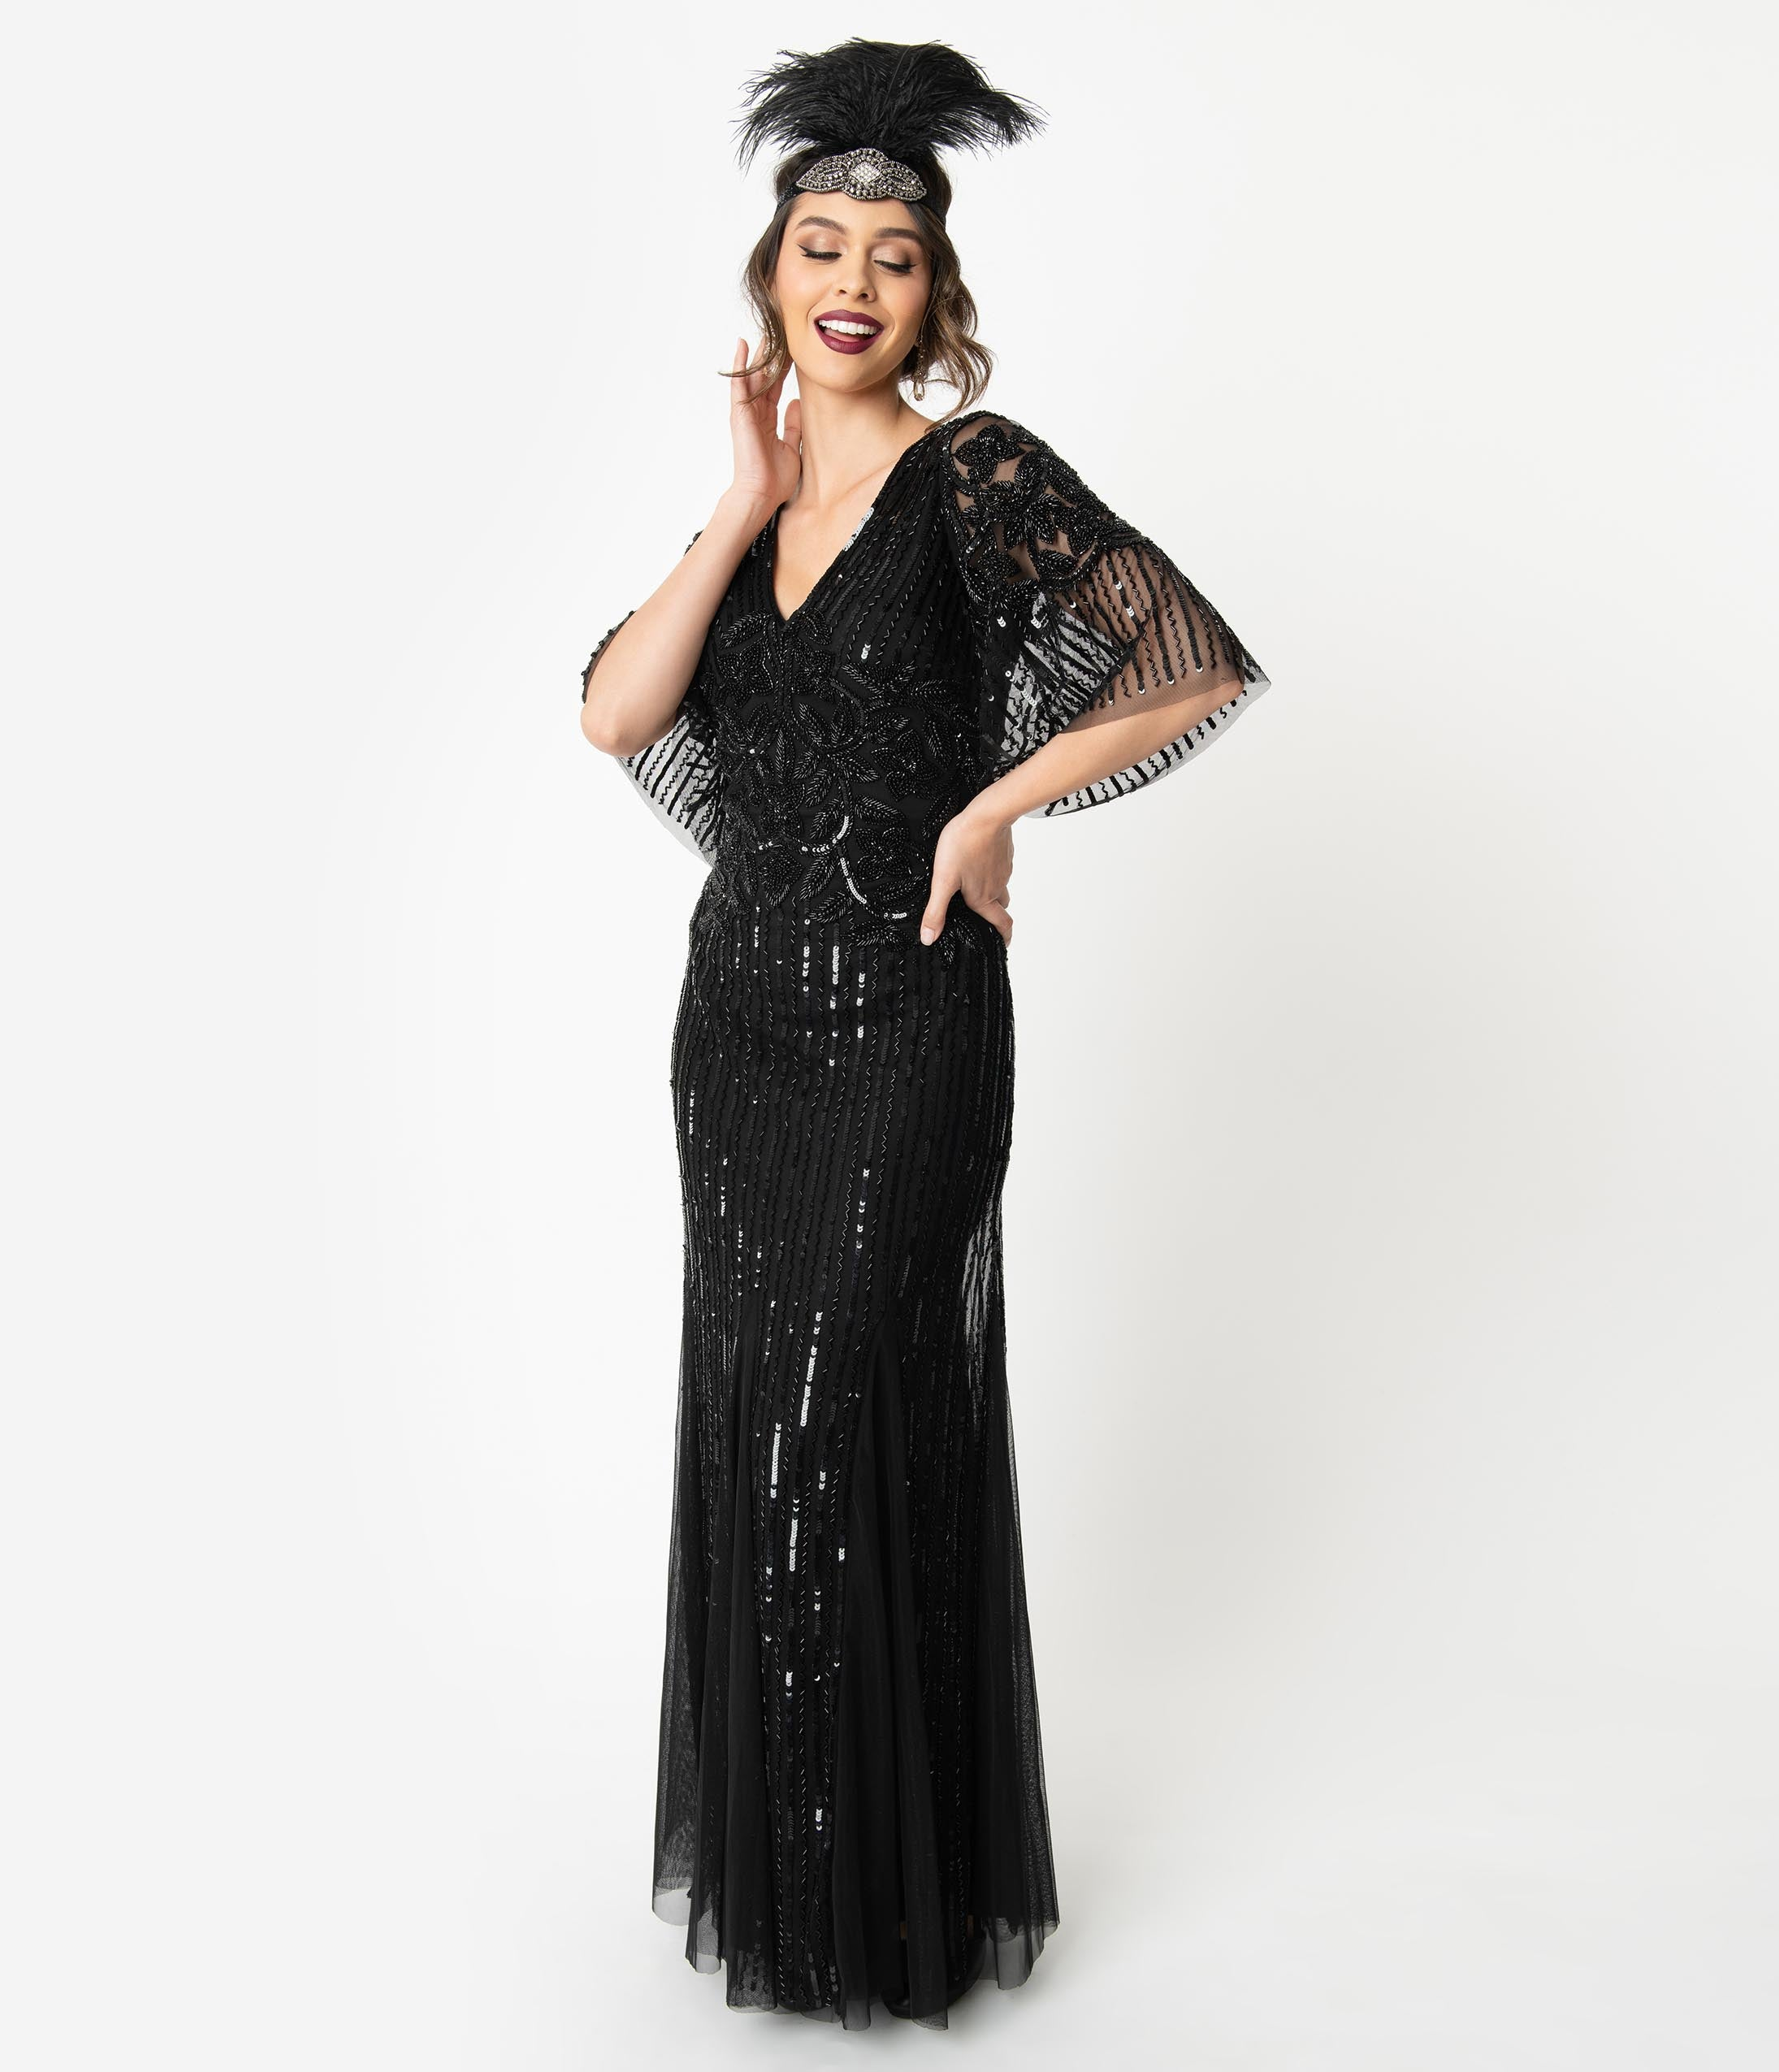 Vintage Evening Dresses and Formal Evening Gowns 1920S Style Black Beaded Sleeved Norma Flapper Gown $268.00 AT vintagedancer.com